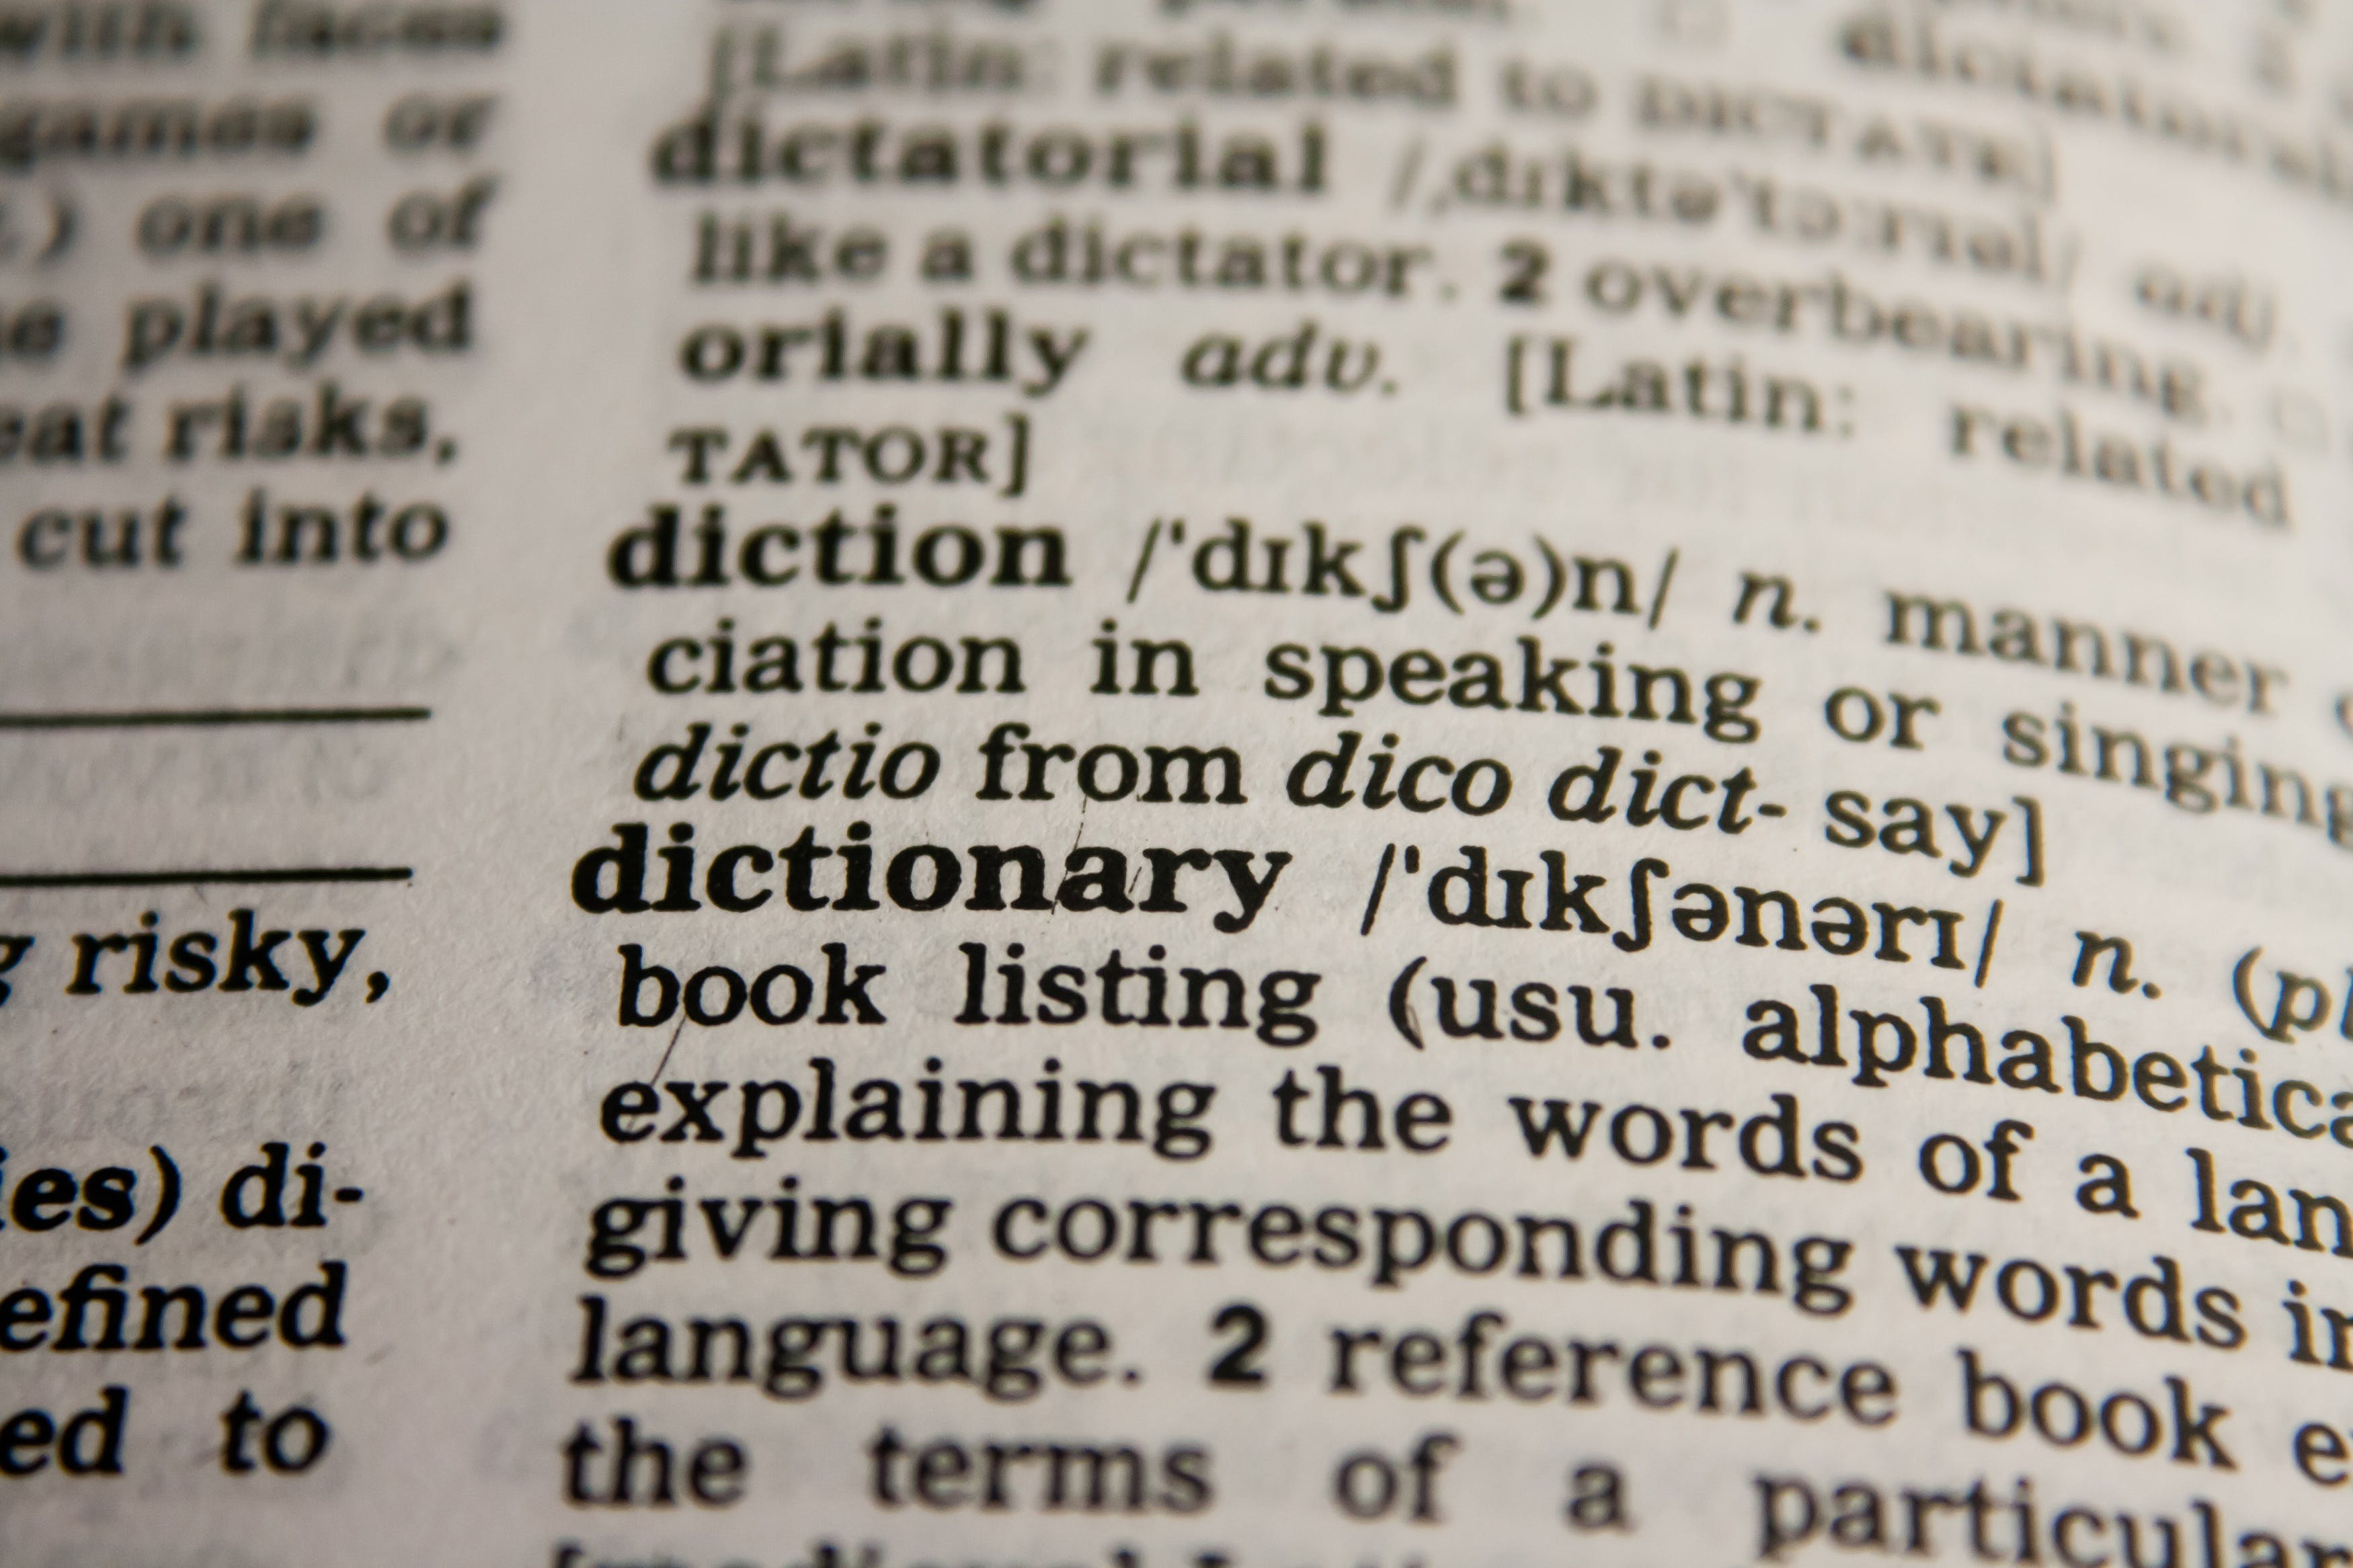 Dictionary Text in Bokeh Effect